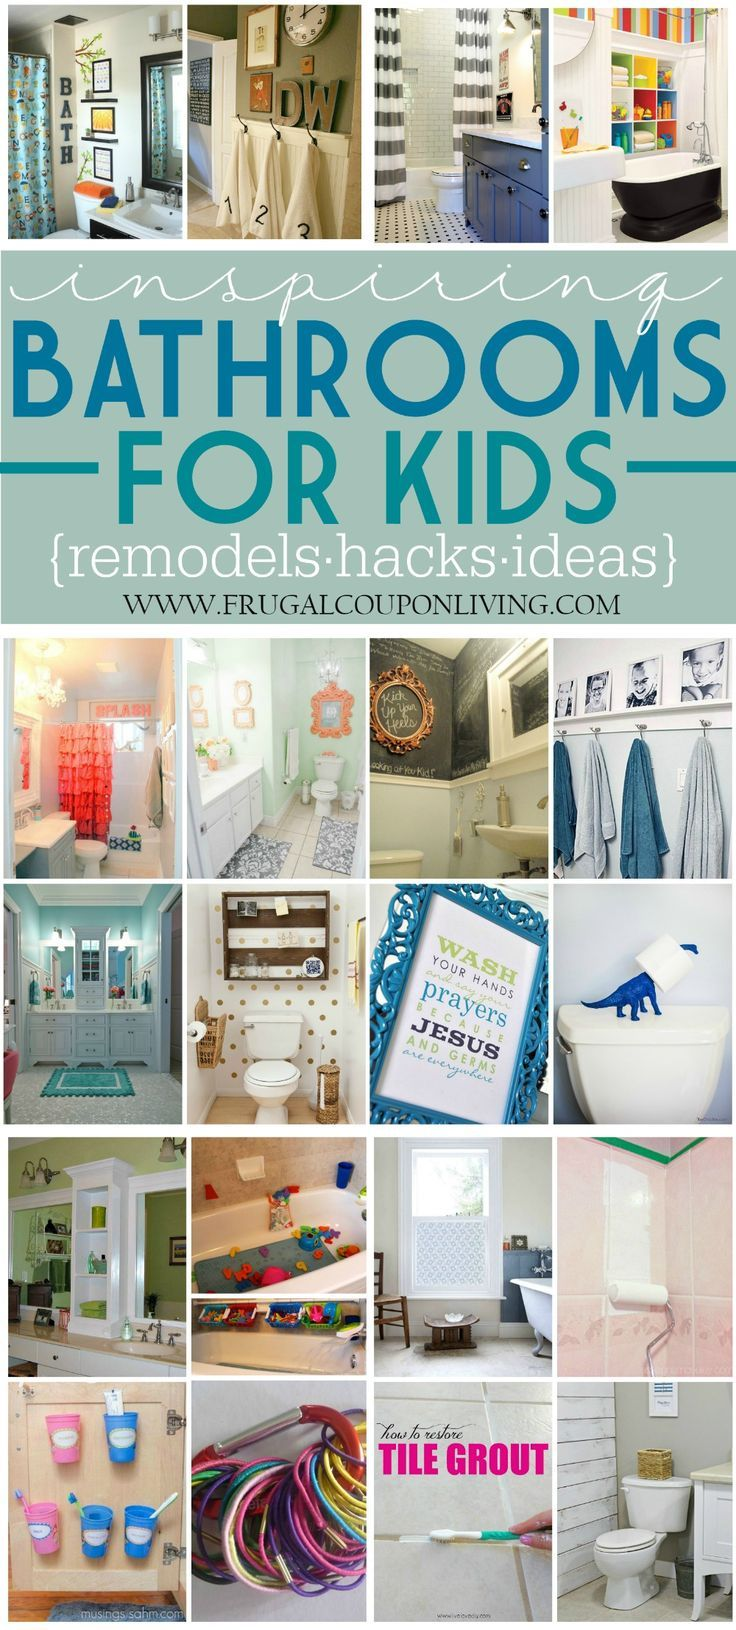 Inspiring Kids Bathrooms - Decorations, Remodels and Hacks on Frugal Coupon Living. Girls Bathroom Ideas, Boys Bathroom Ideas, Bathroom Hacks, Bathroom DIY.